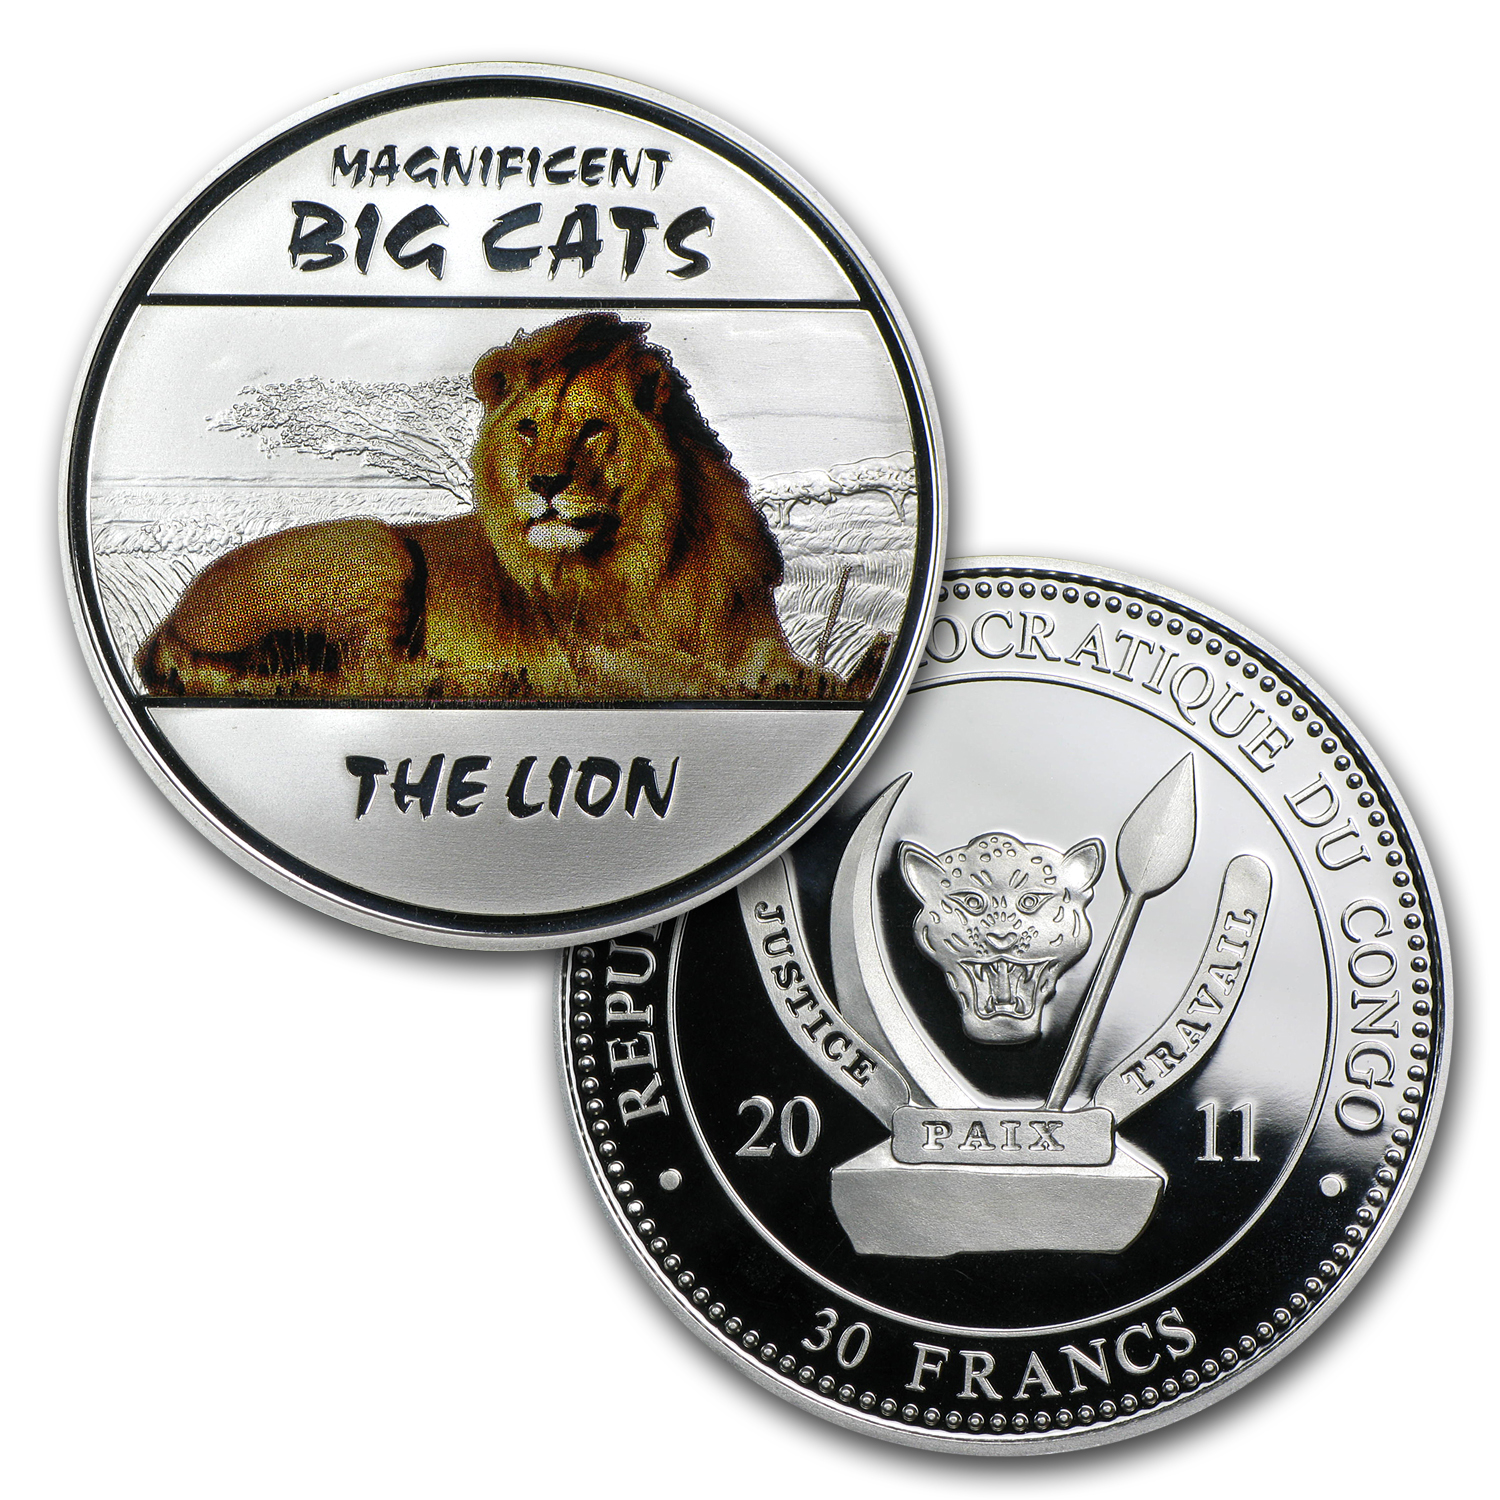 2011 Congo 4-coin Silver Magnificent Big Cats Proof Set